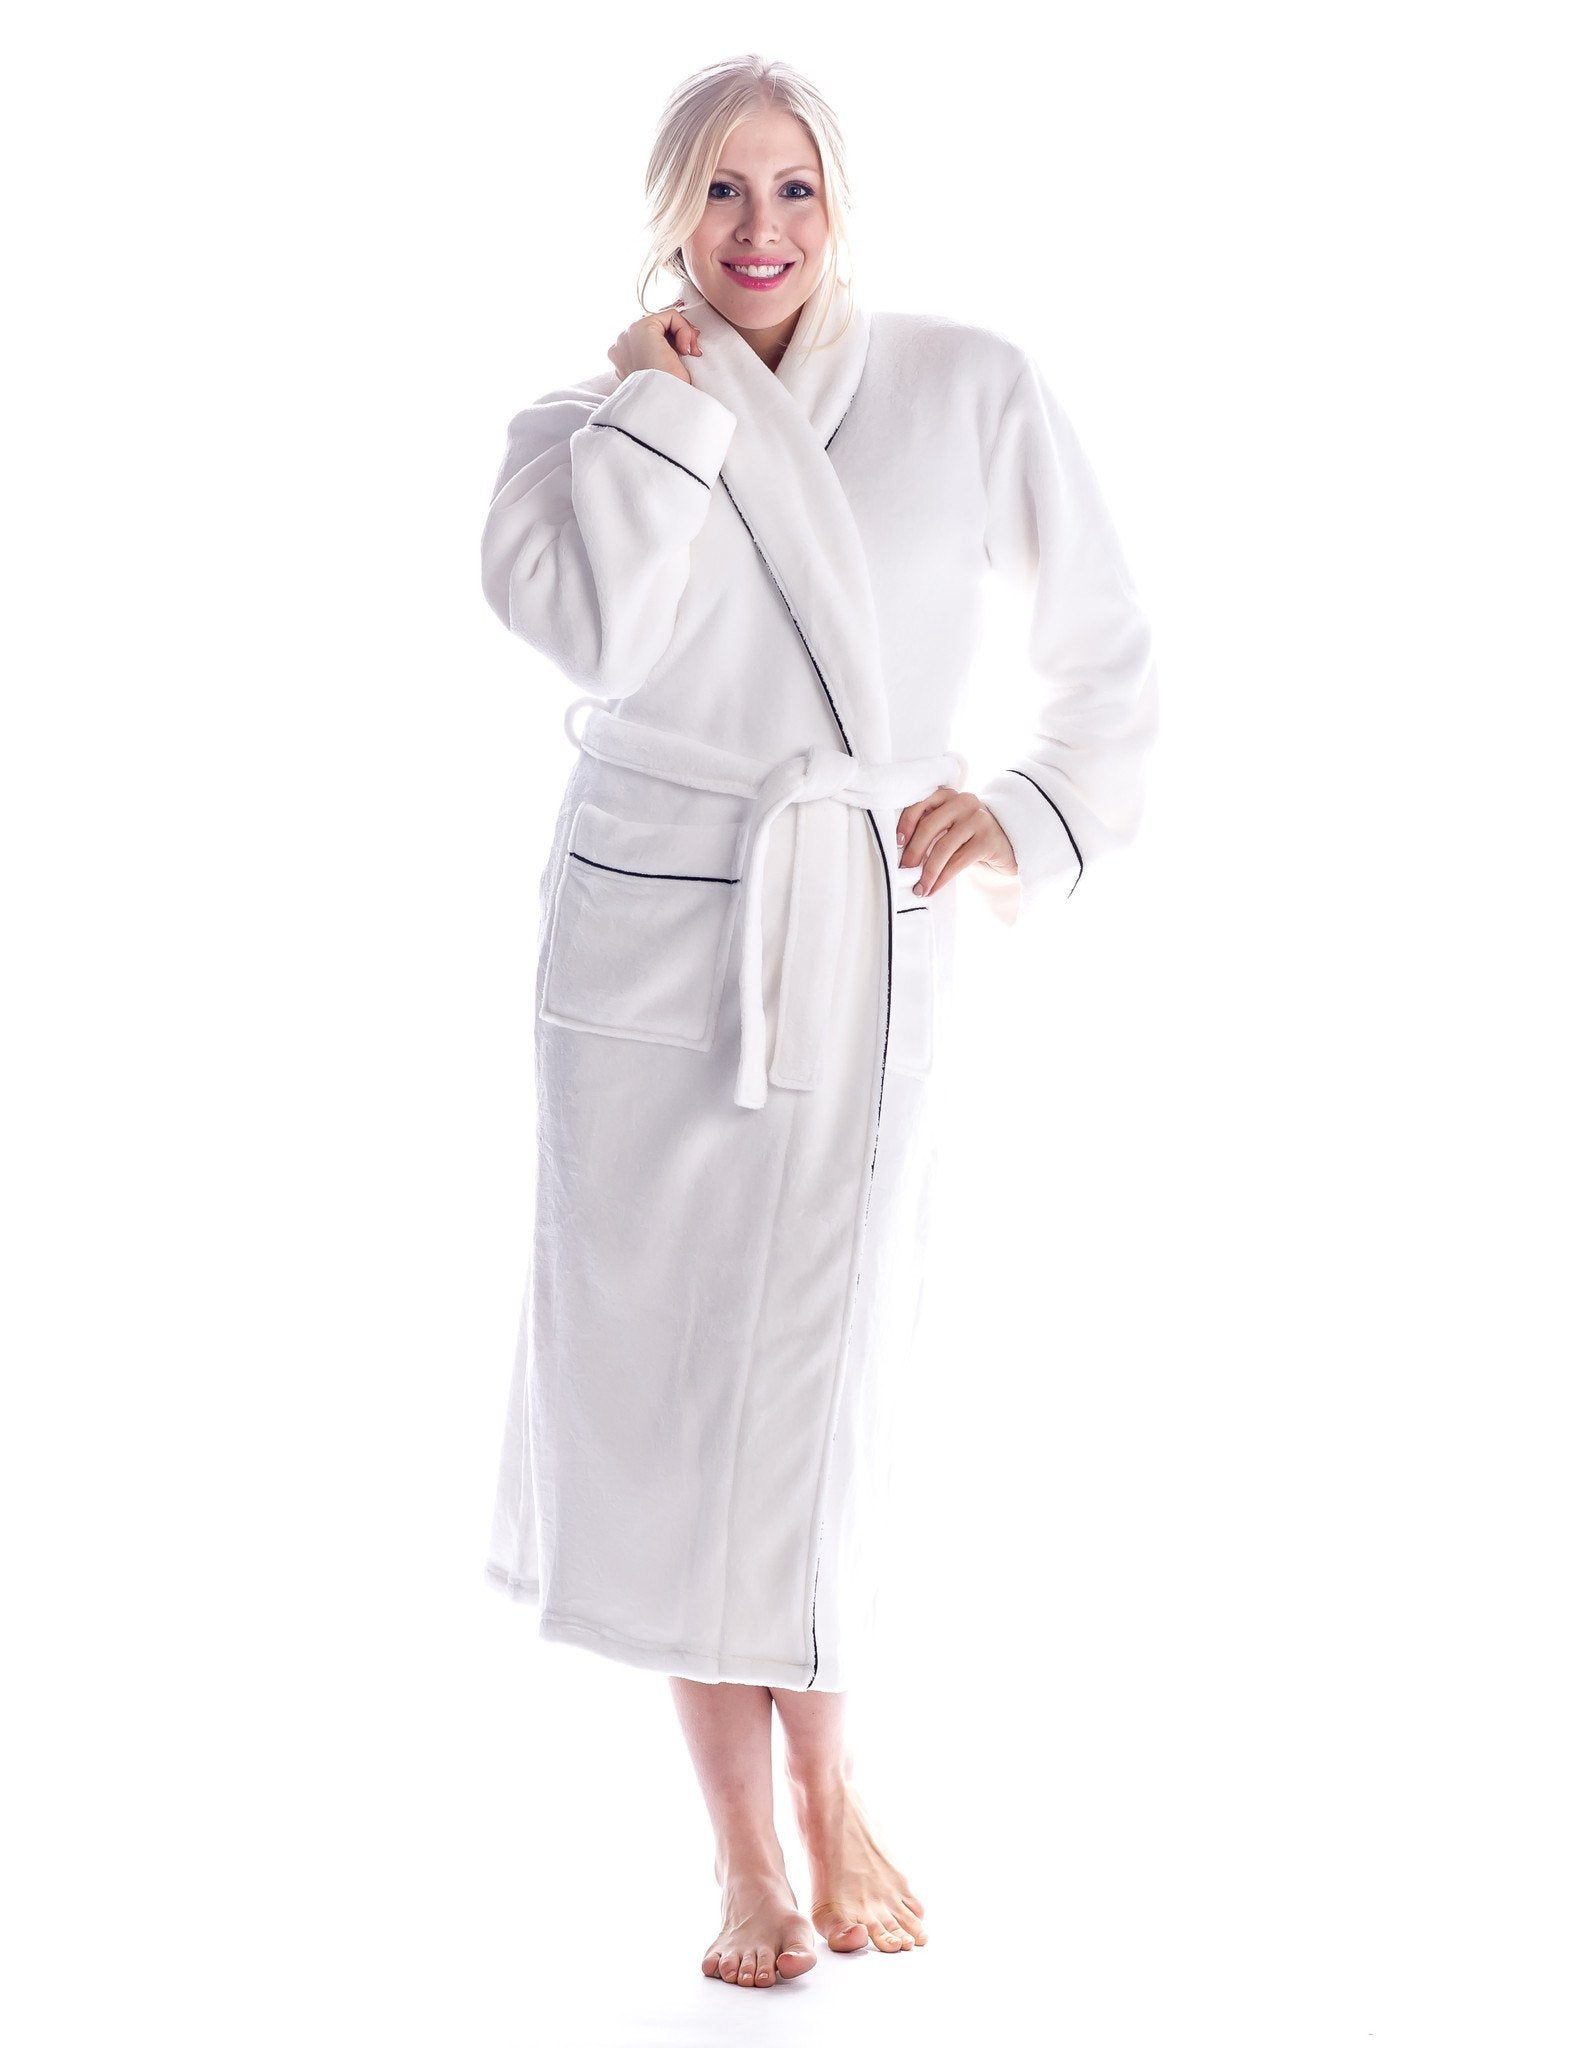 Women's Premium Coral Fleece Plush Spa/Bath Robe - Pure White